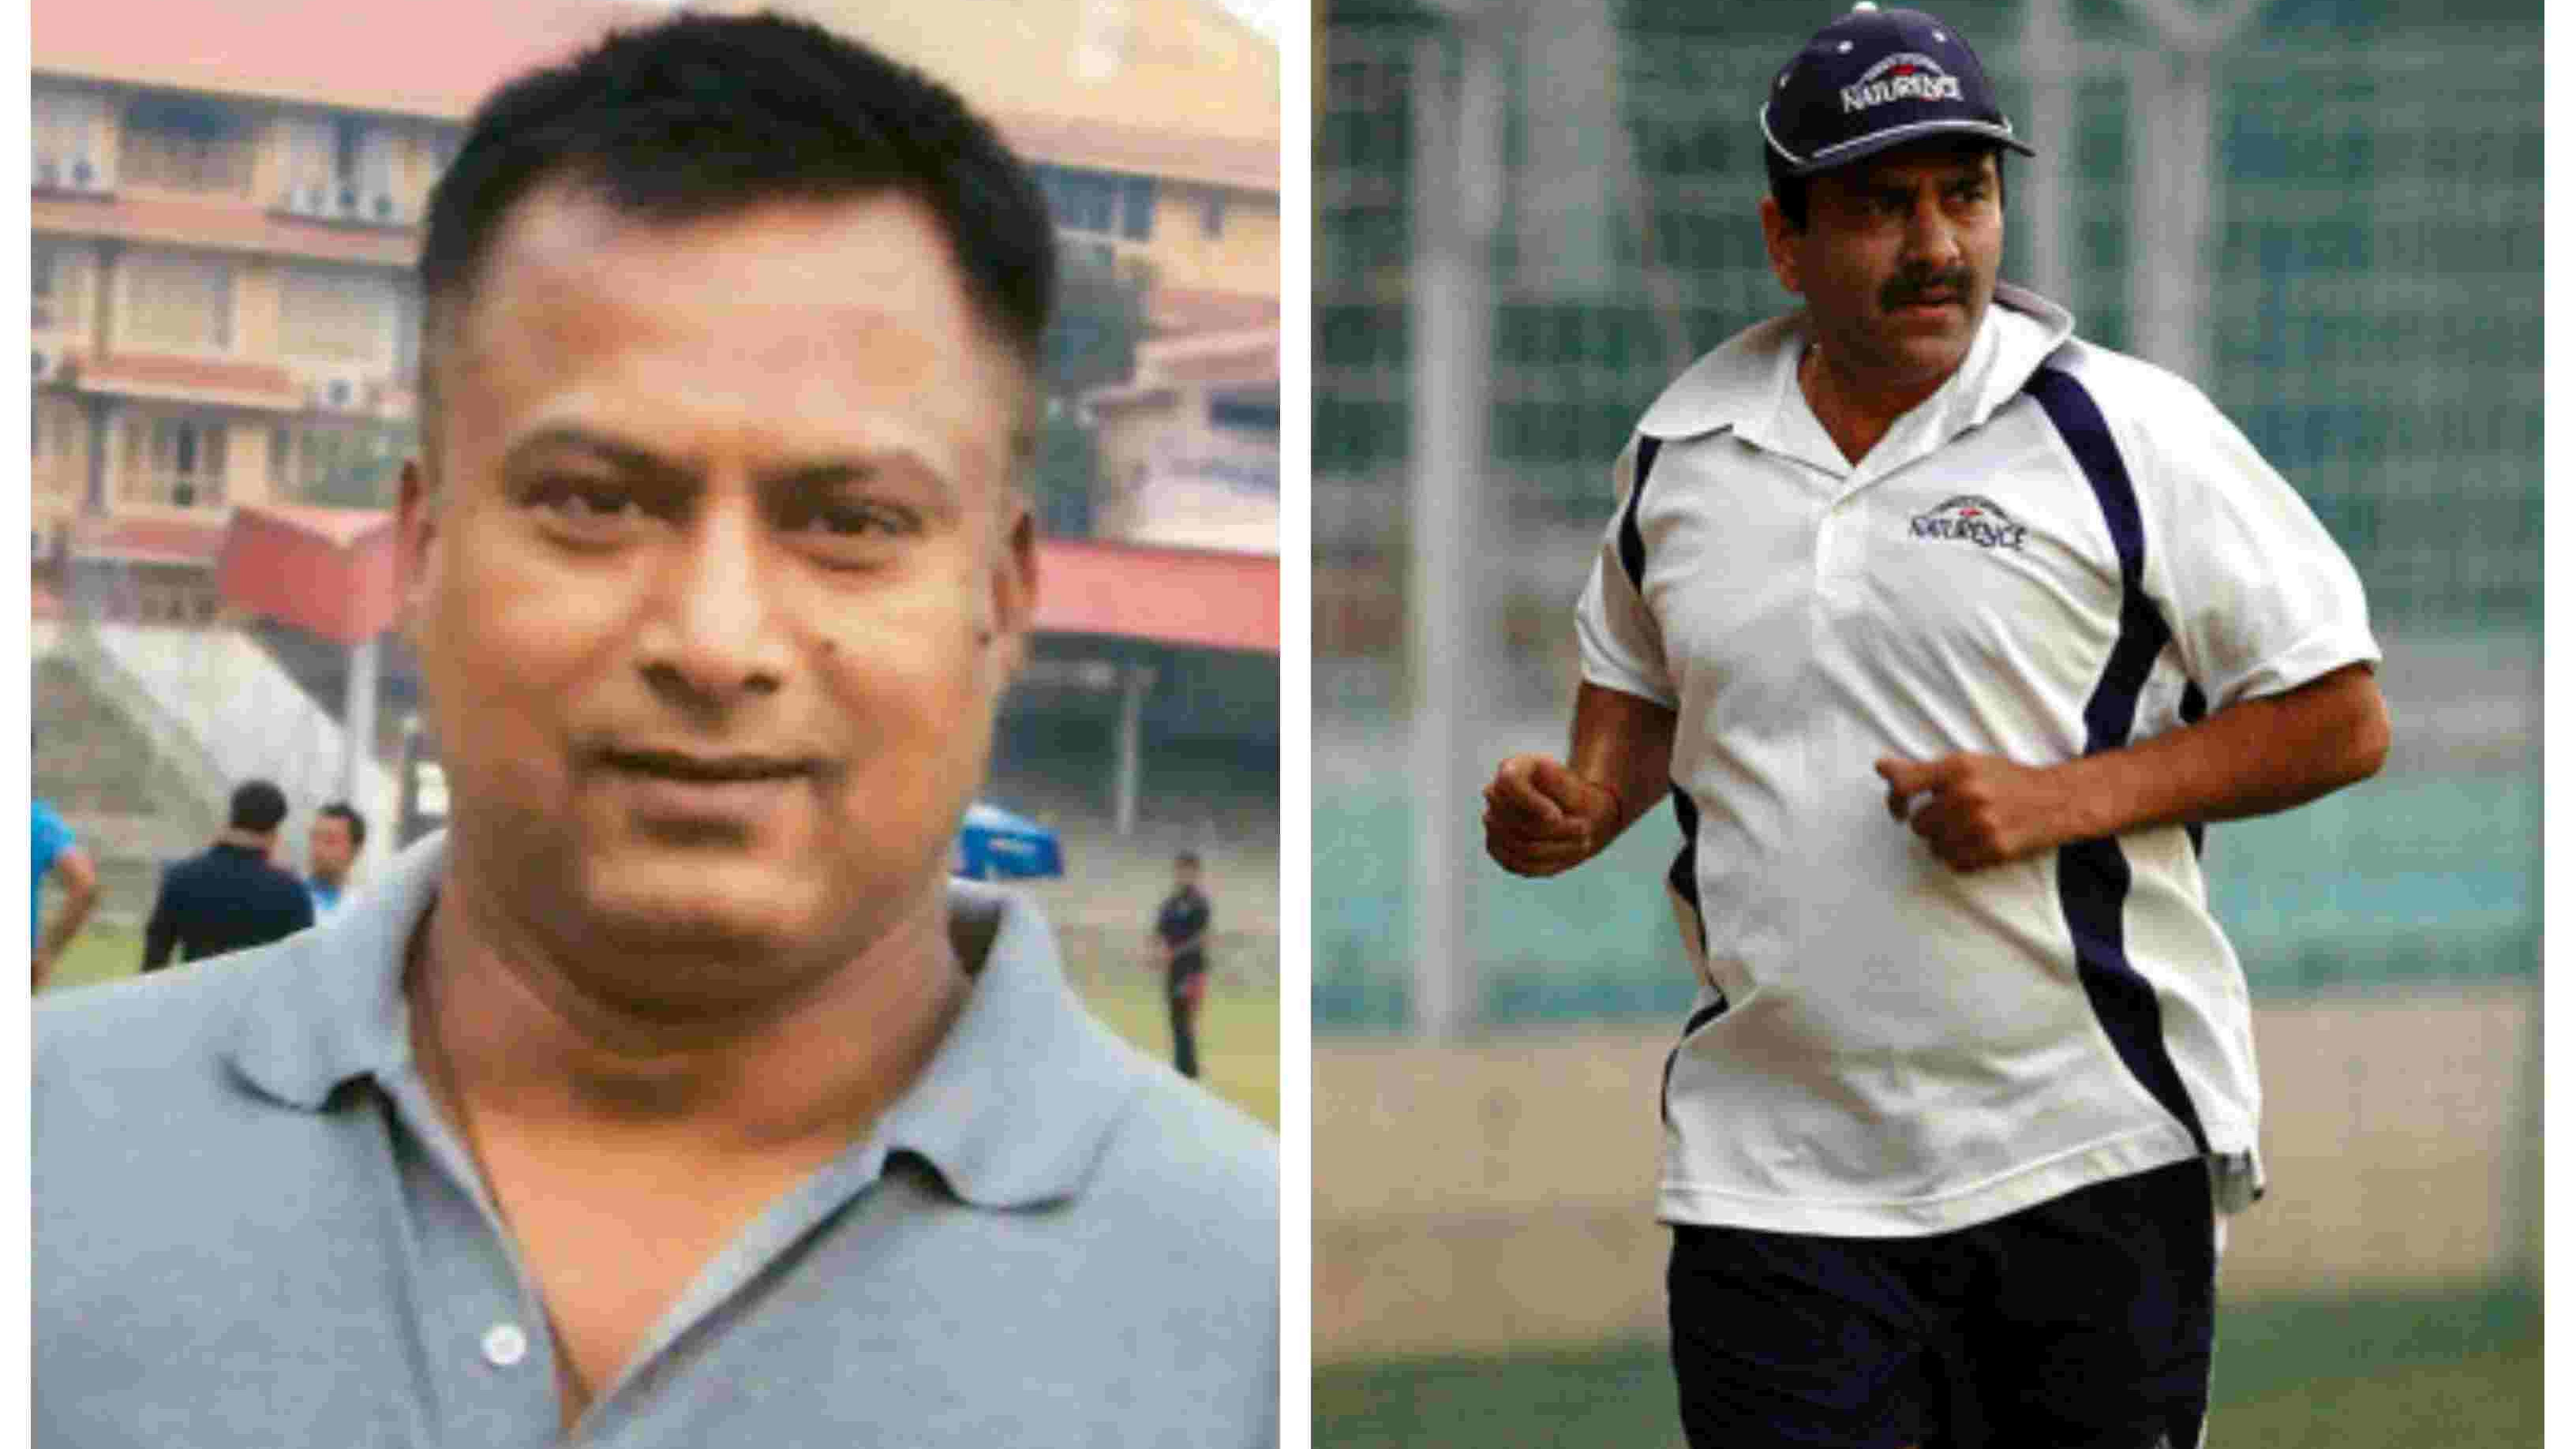 Former India cricketers Atul Bedade and Manoj Prabhakar among applicants for women's coach